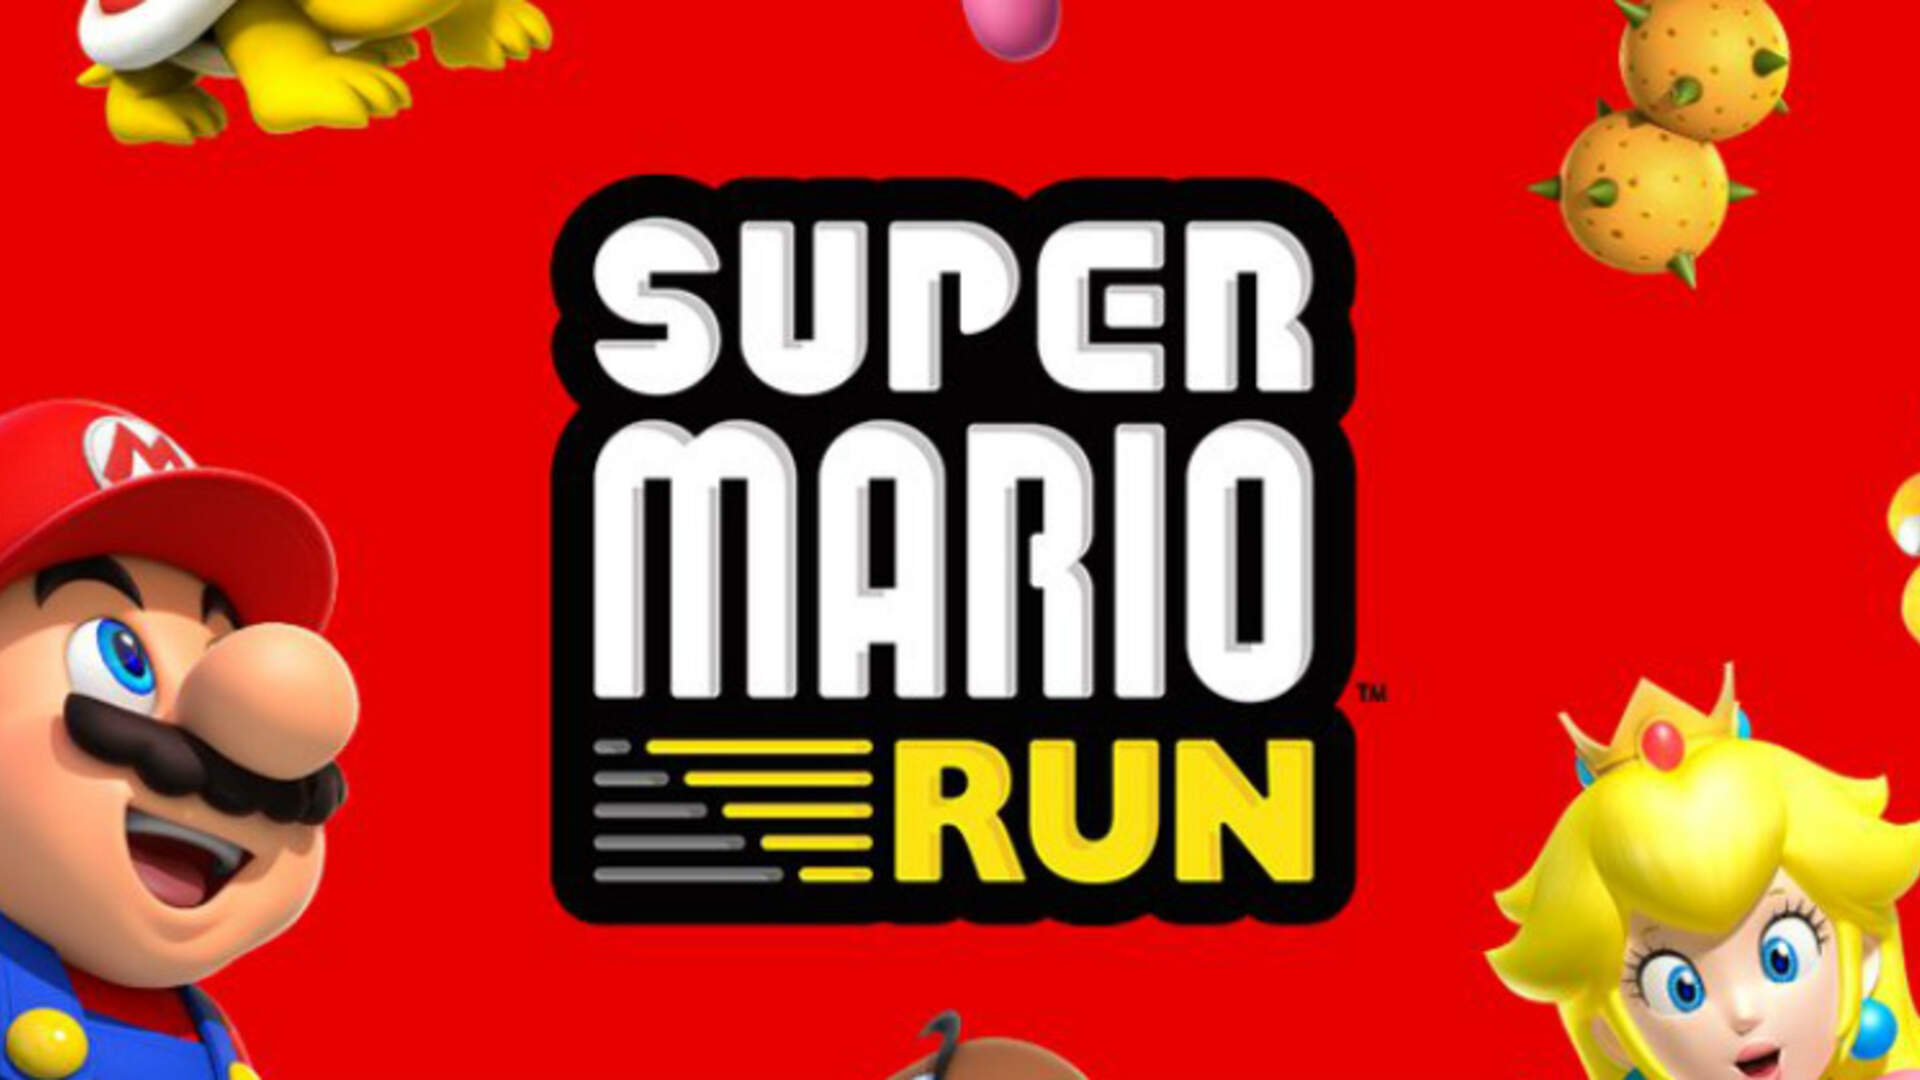 Super Mario Run Is Always Online Because of Piracy, Says Miyamoto